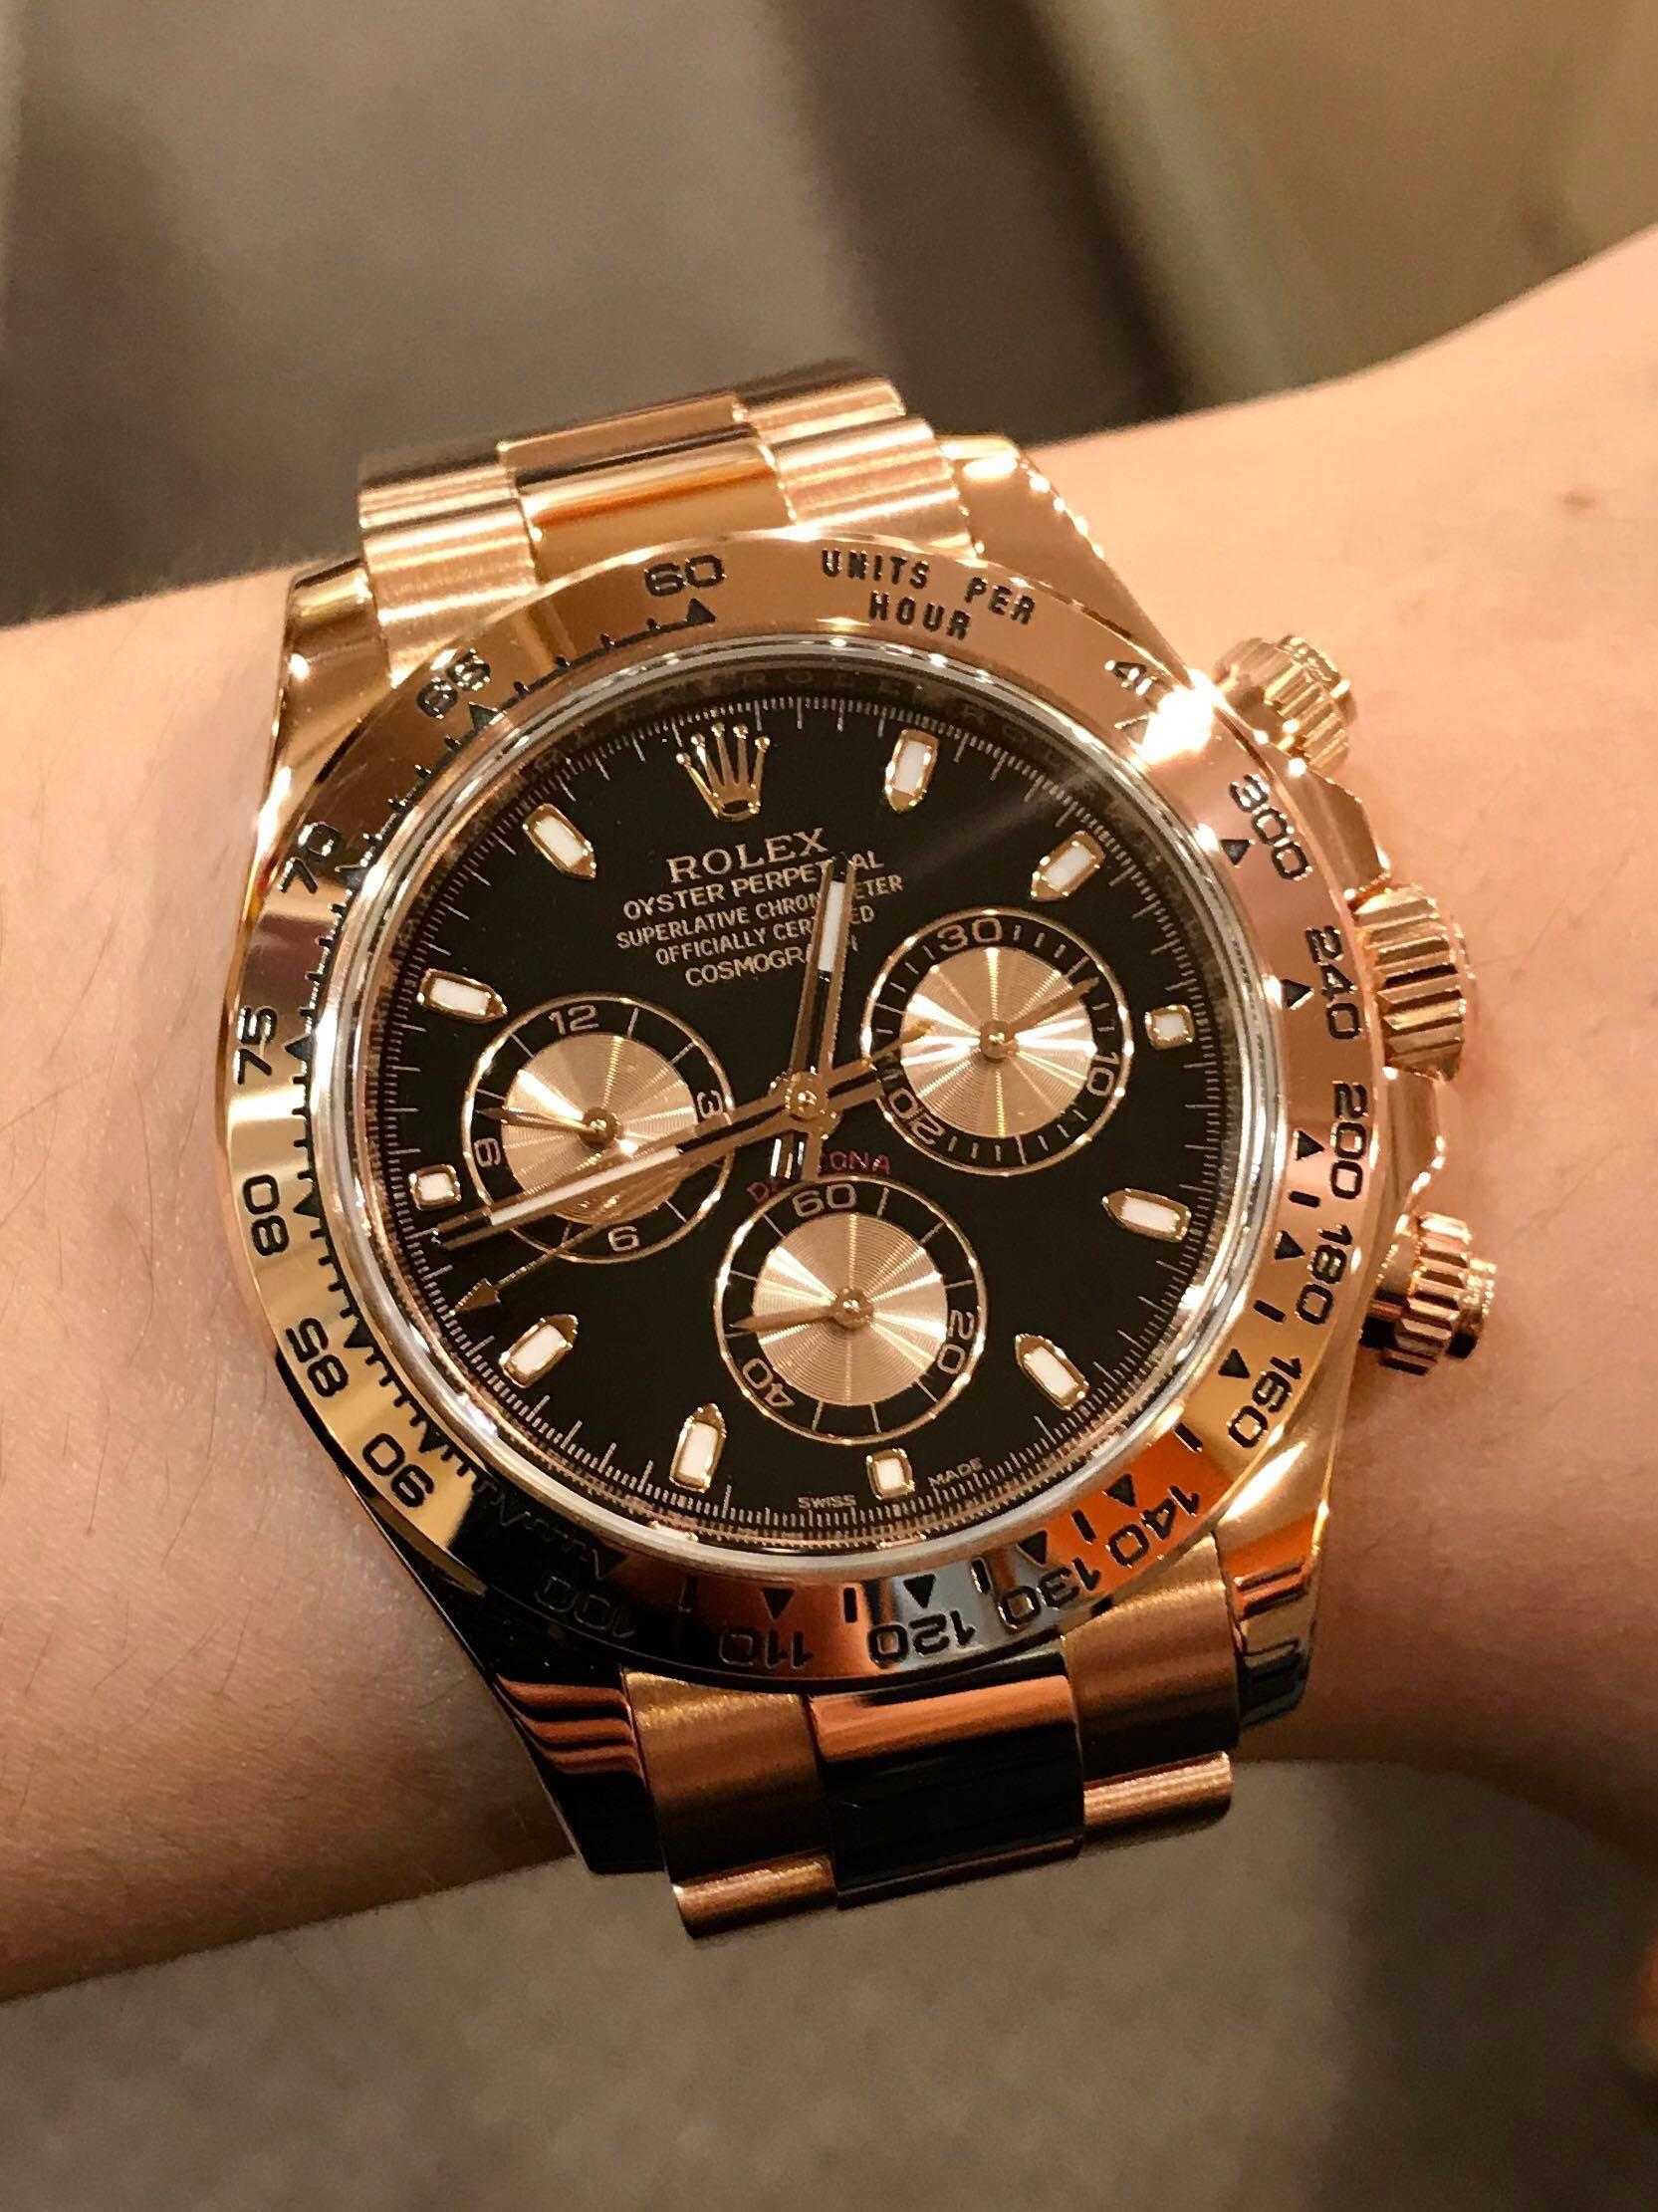 AN SERIES] Rolex Cosmograph Daytona FULL ROSE GOLD Ref